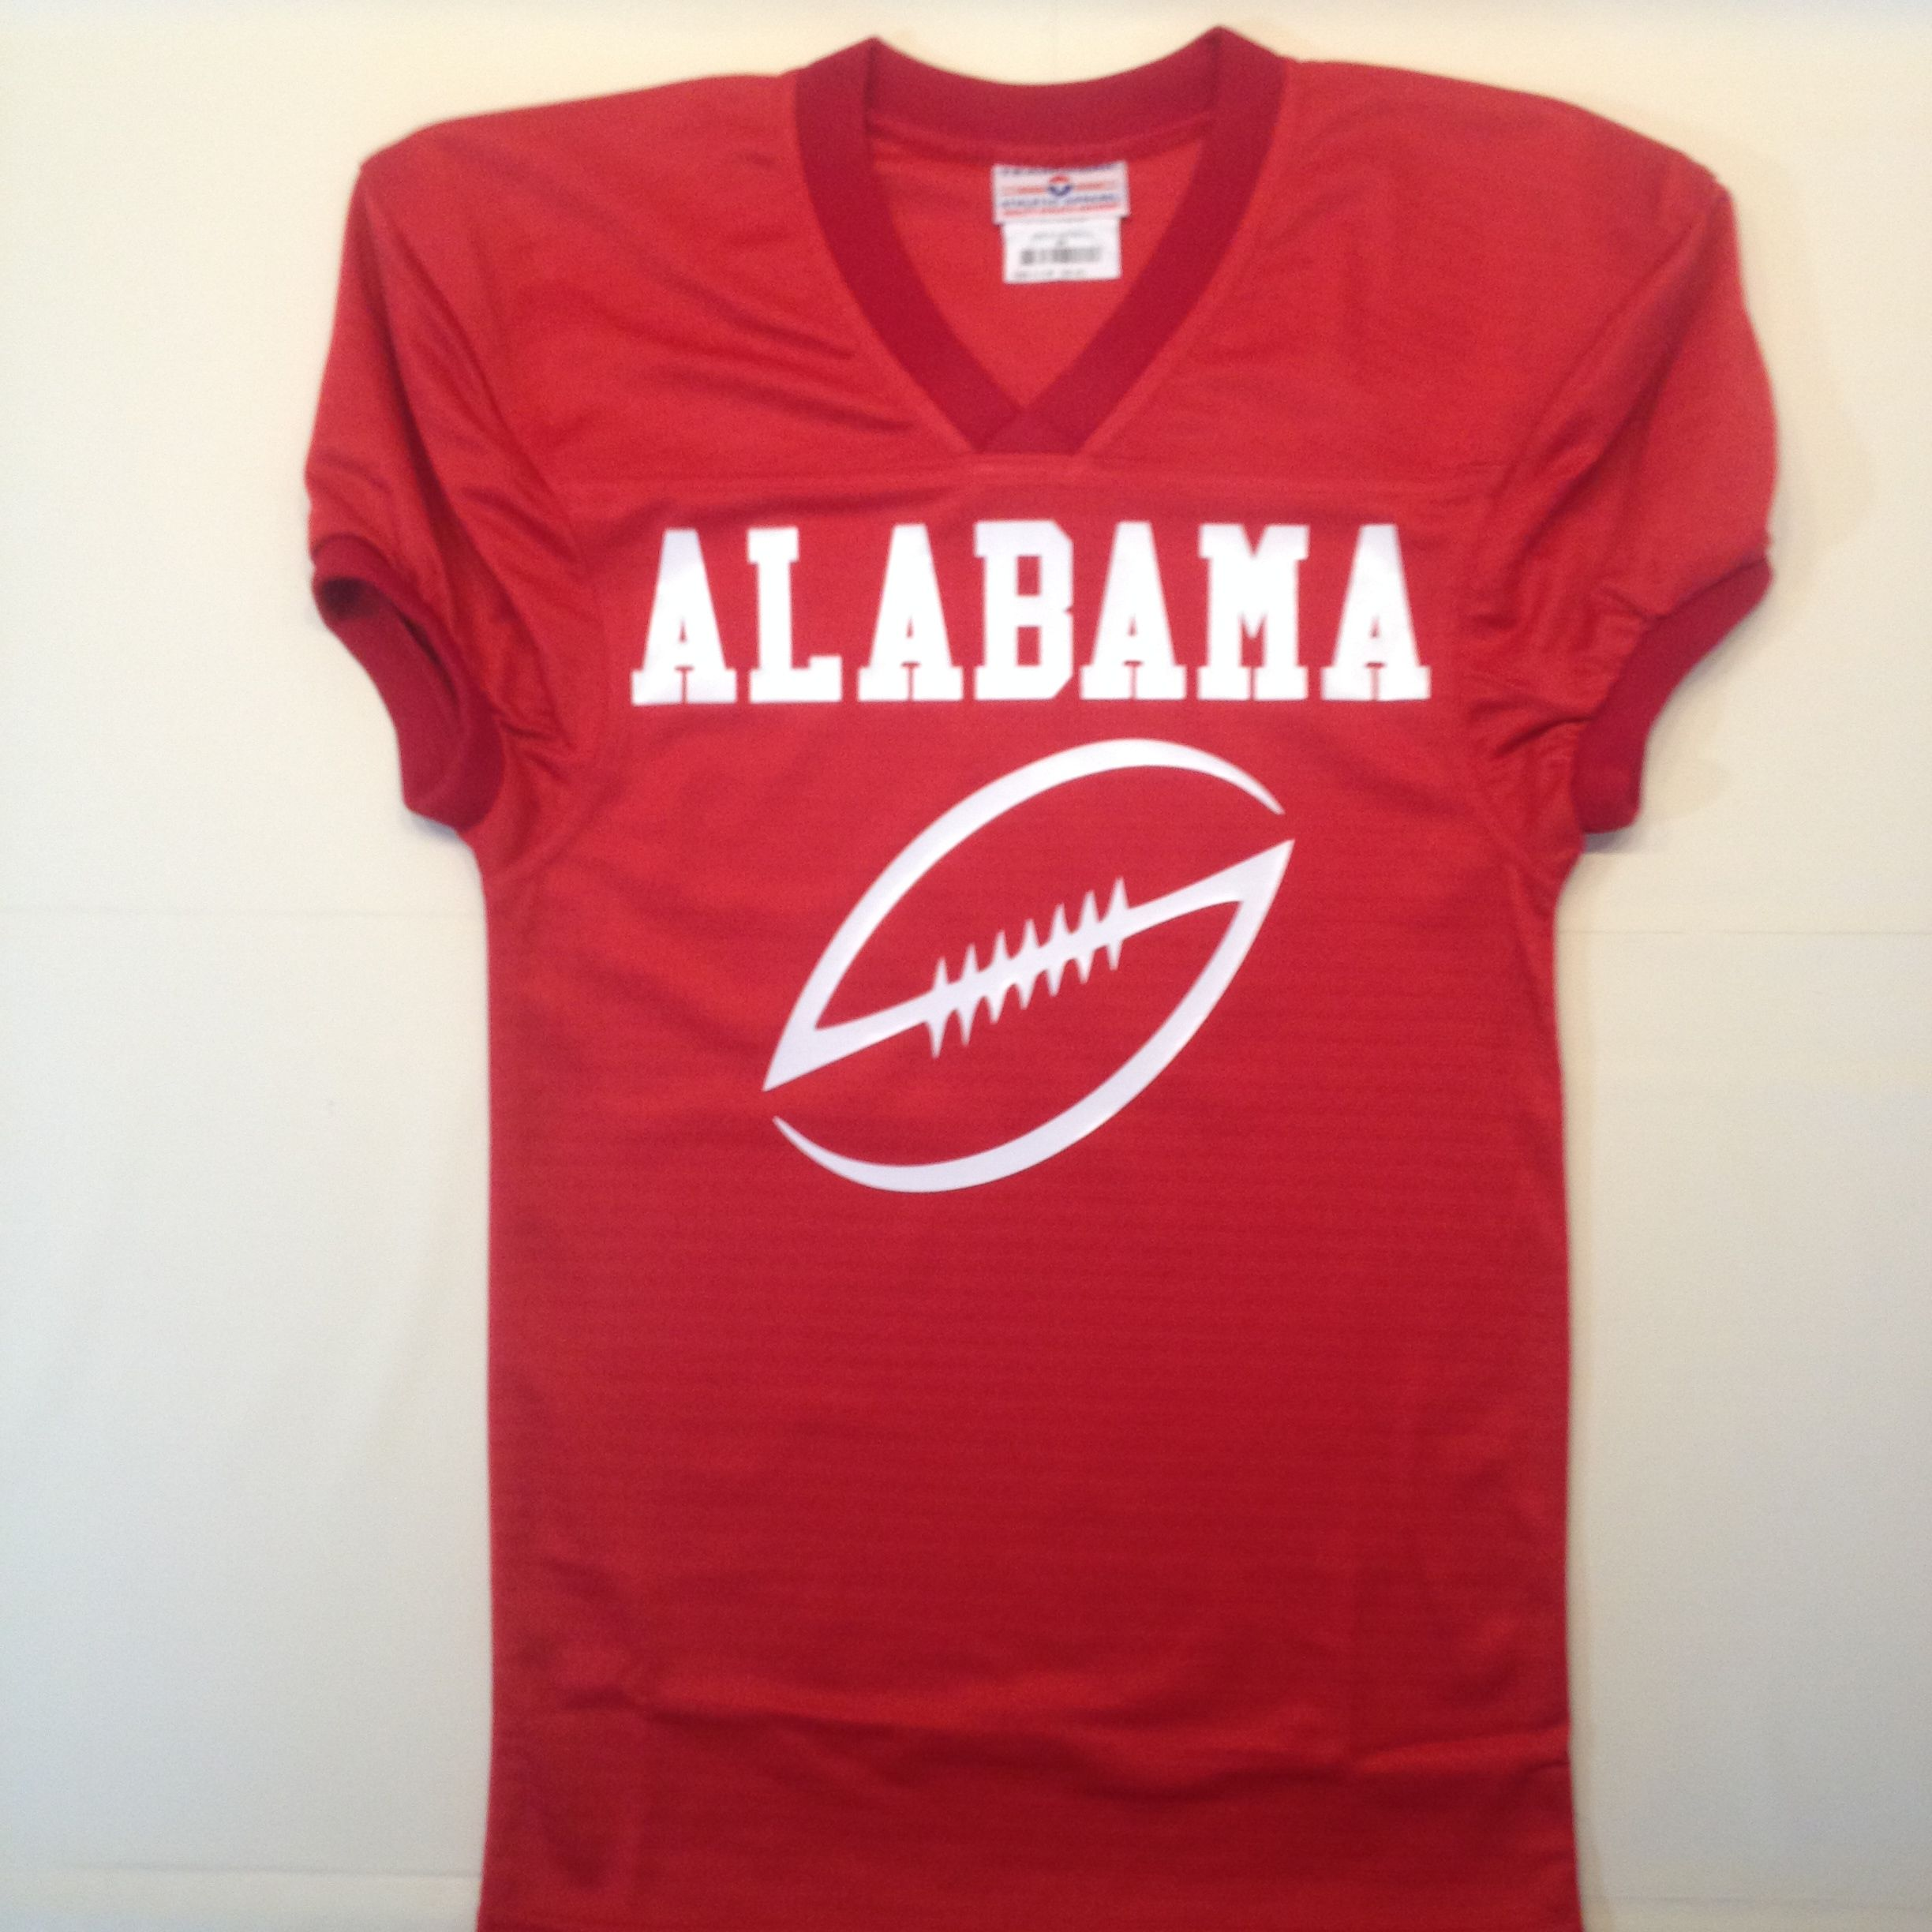 new product 03828 aa7b4 Alabama #crimson red custom #football jersey with cool ...